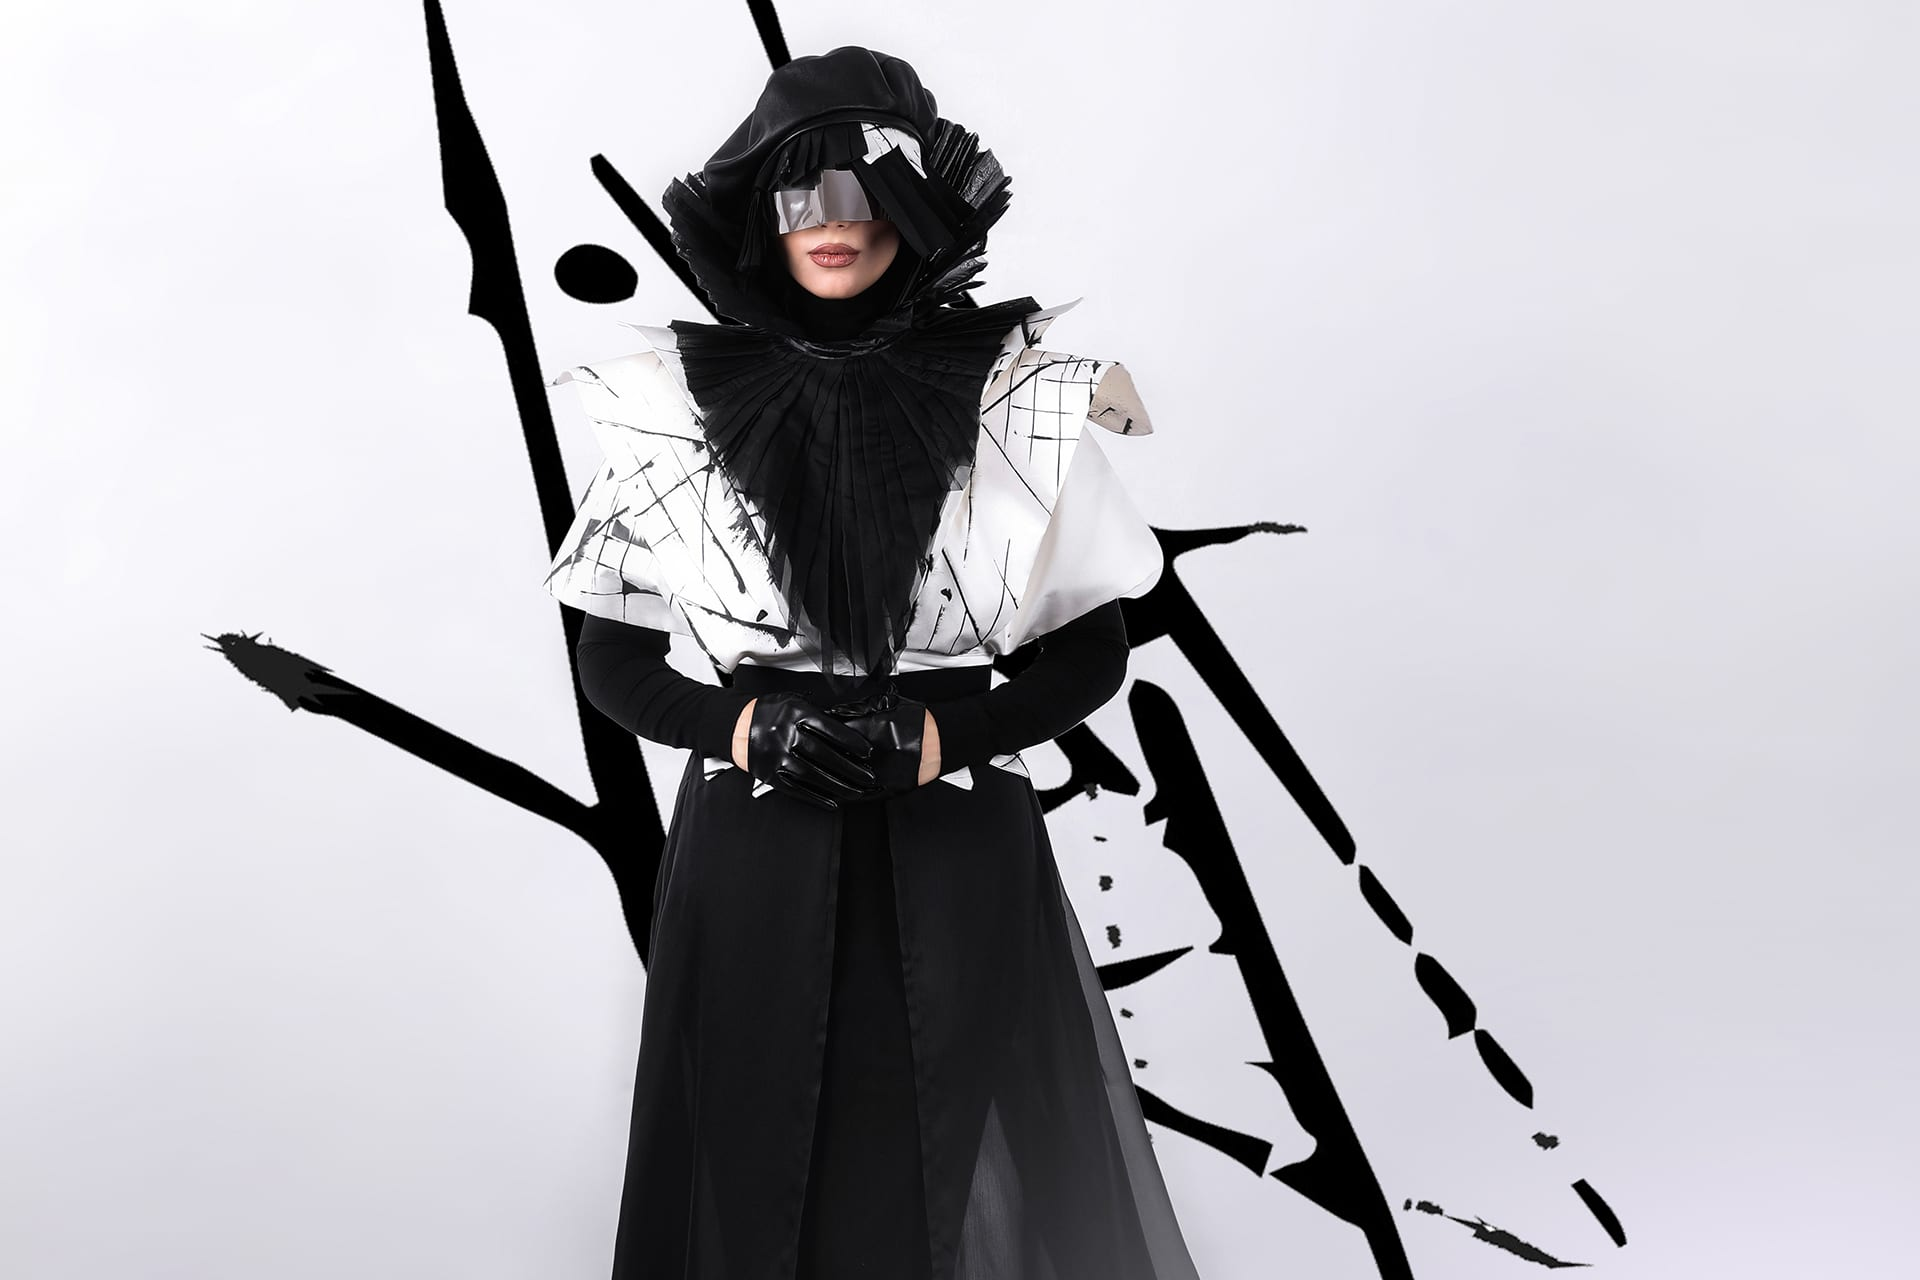 dominique-creation-styliste-creatrice-haute-couture-robe-noir-blanc